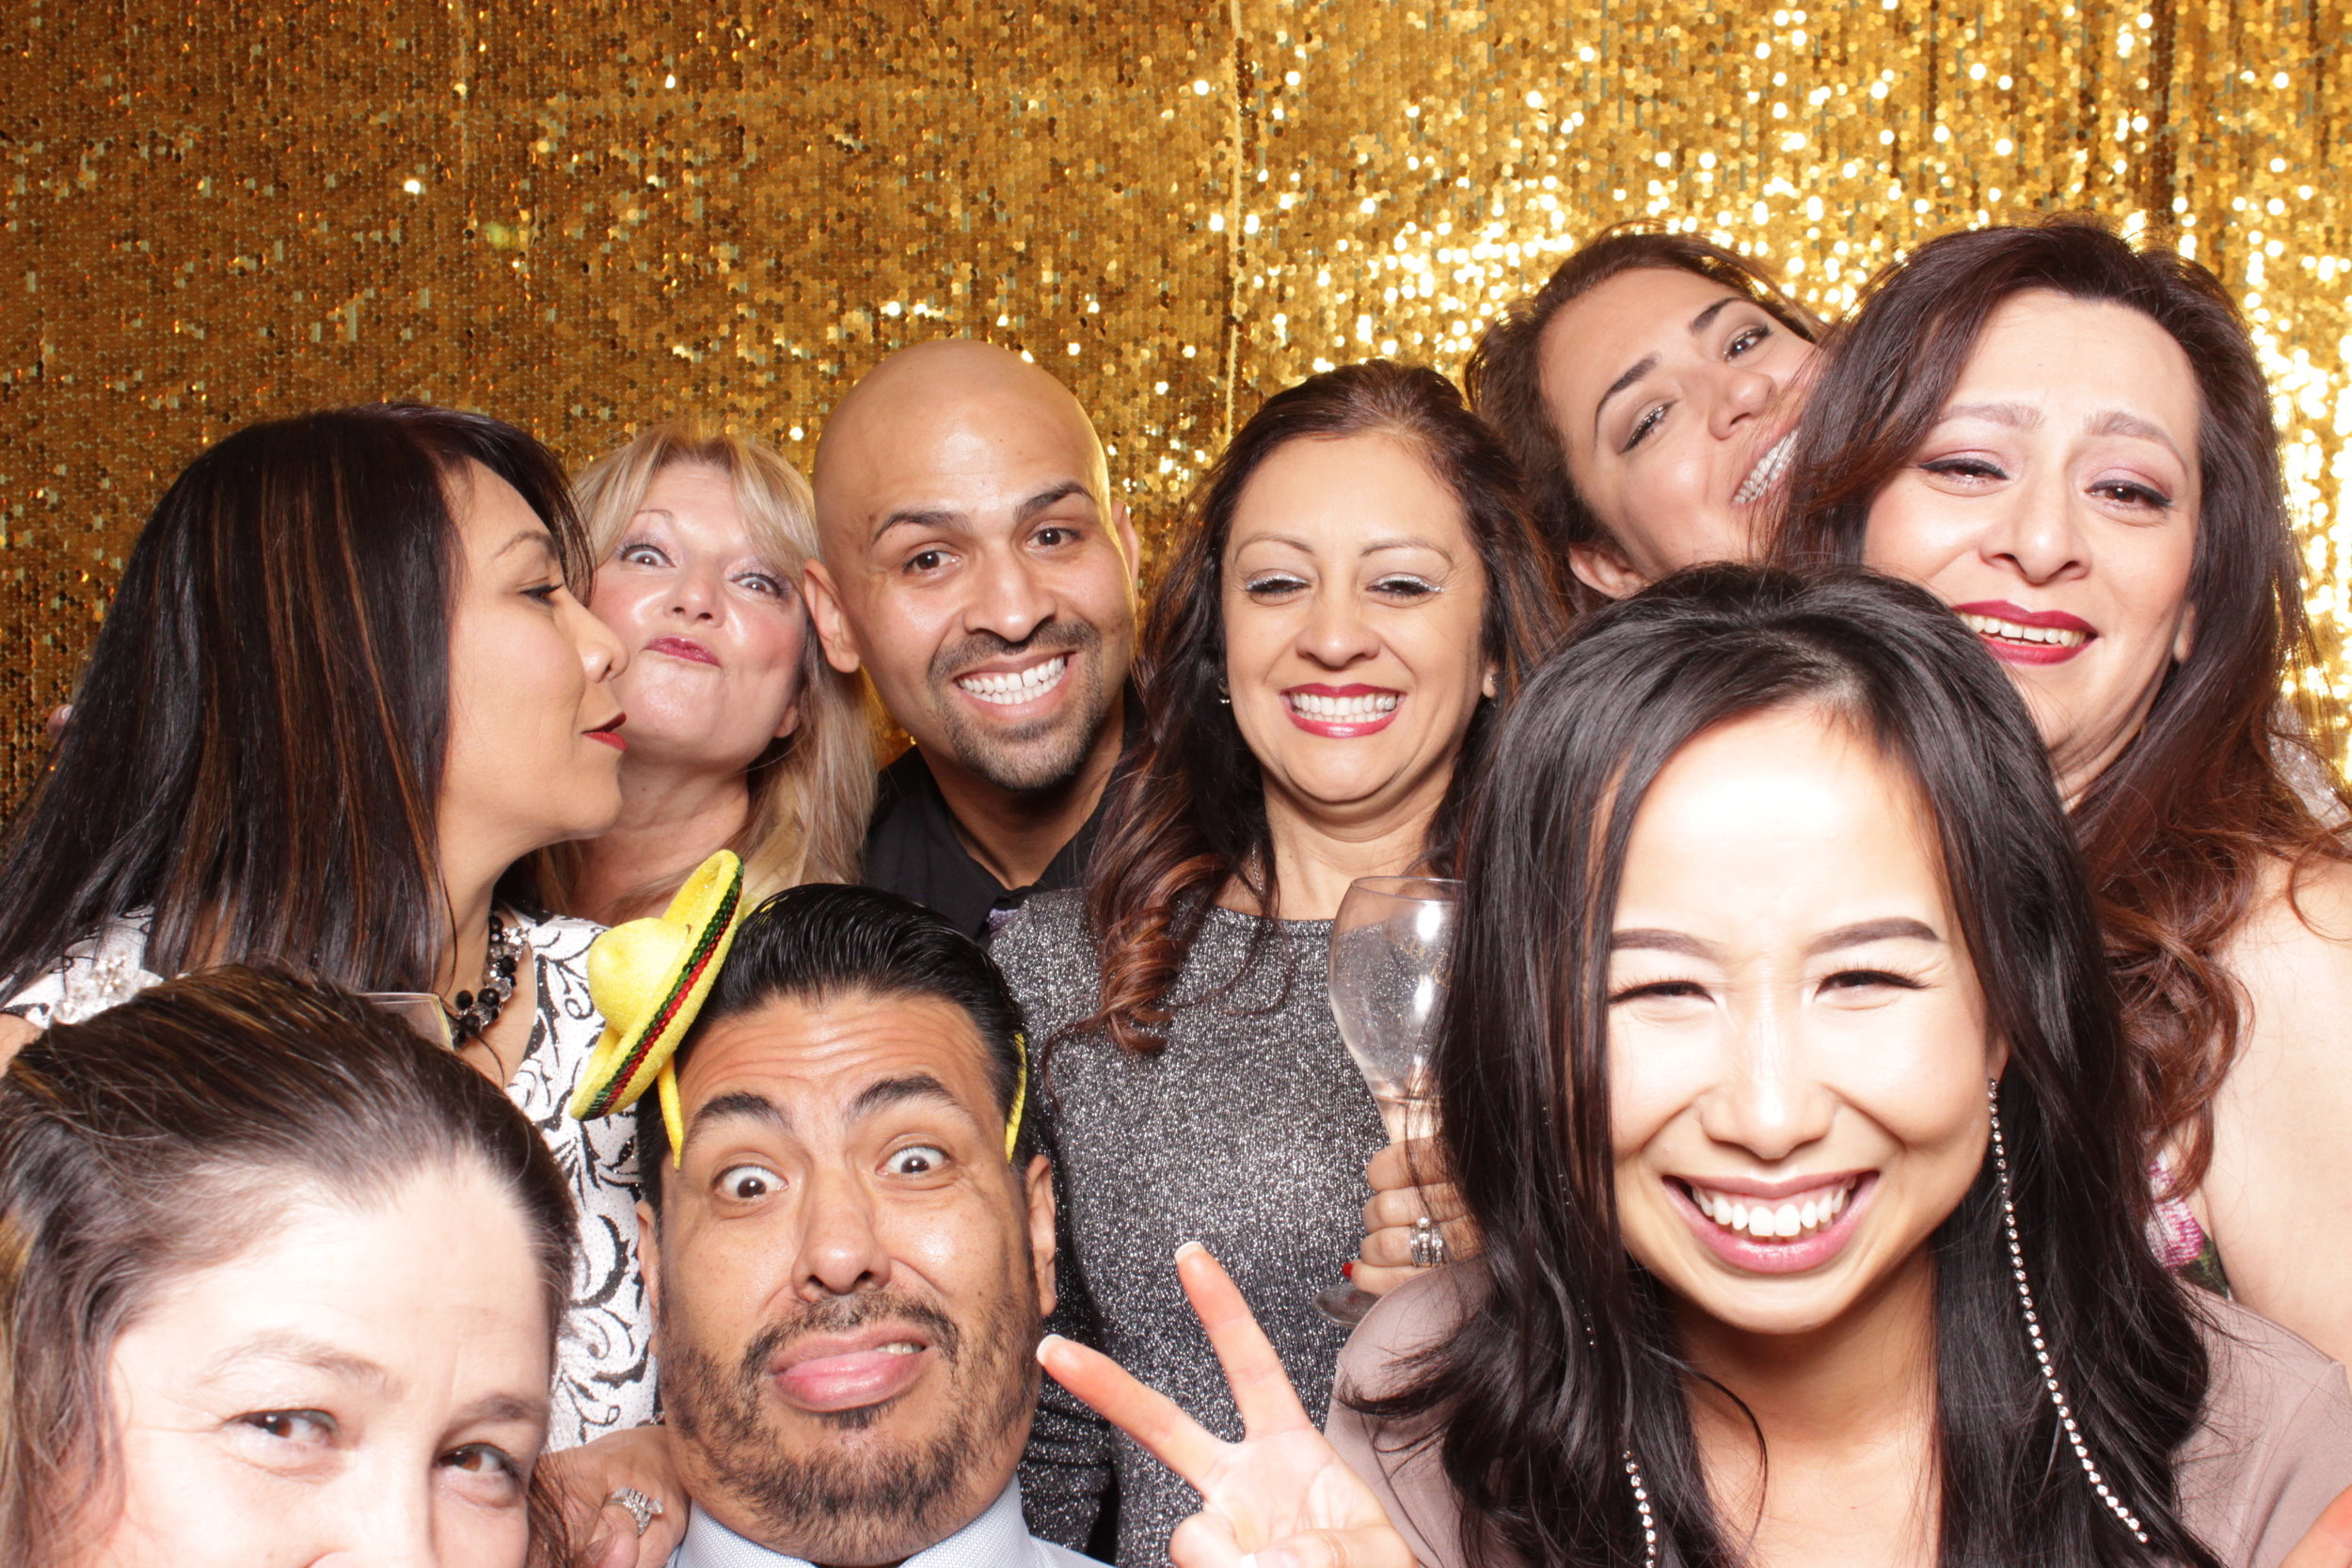 chico-photo-booth-holiday-rush-company-party